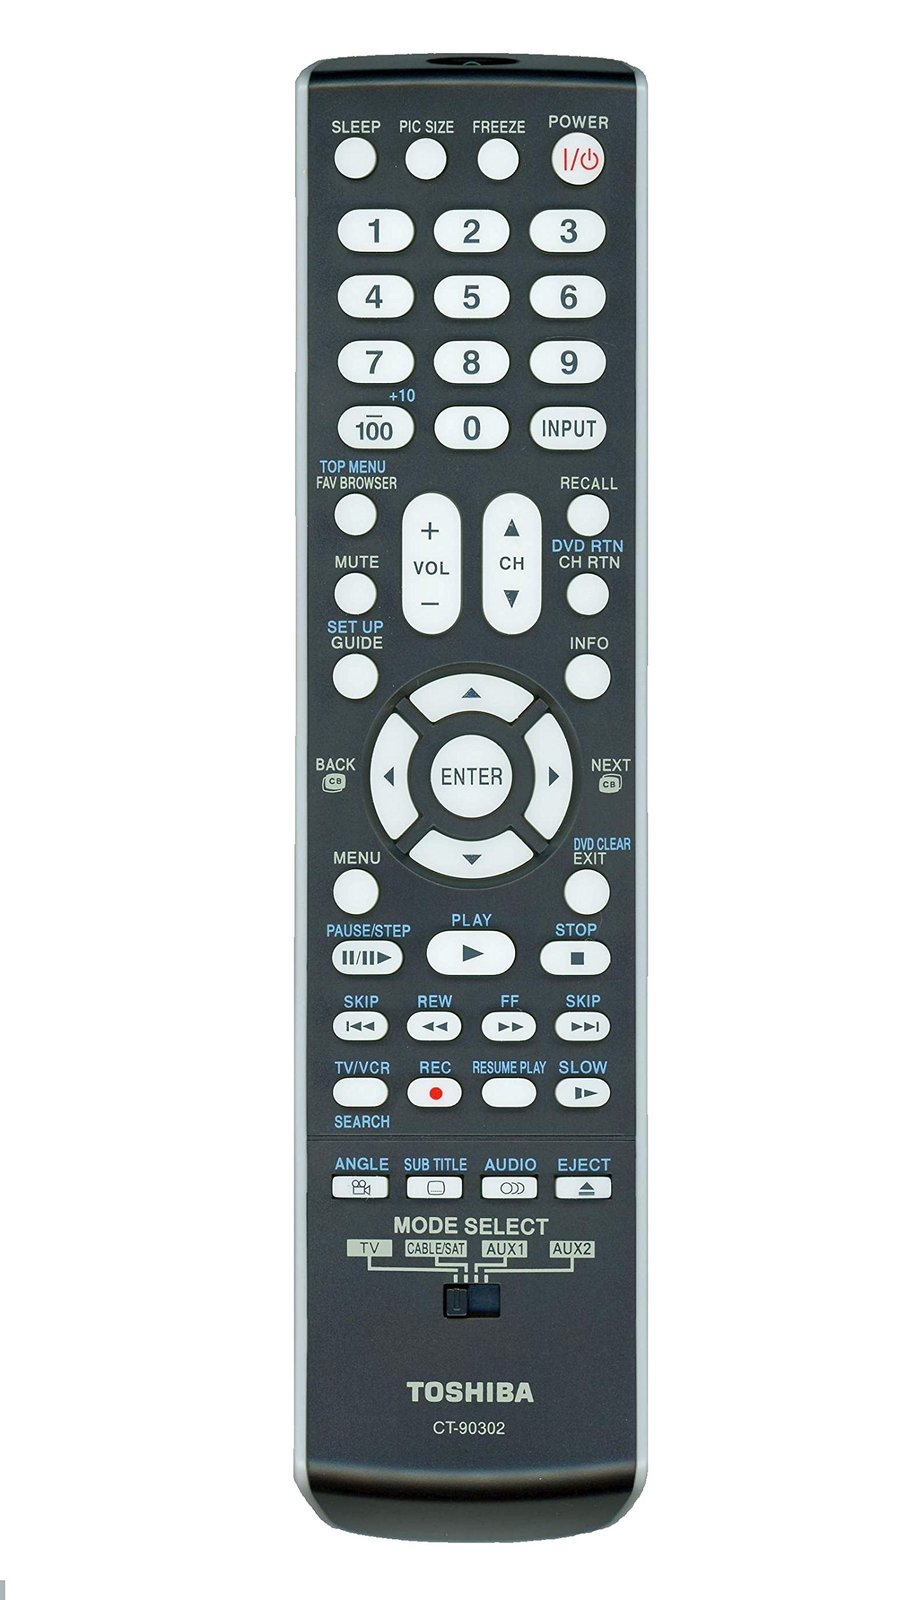 Original Toshiba CT-90302 LCD TV Remote Control, P/N 75010932 (Substitute for CT